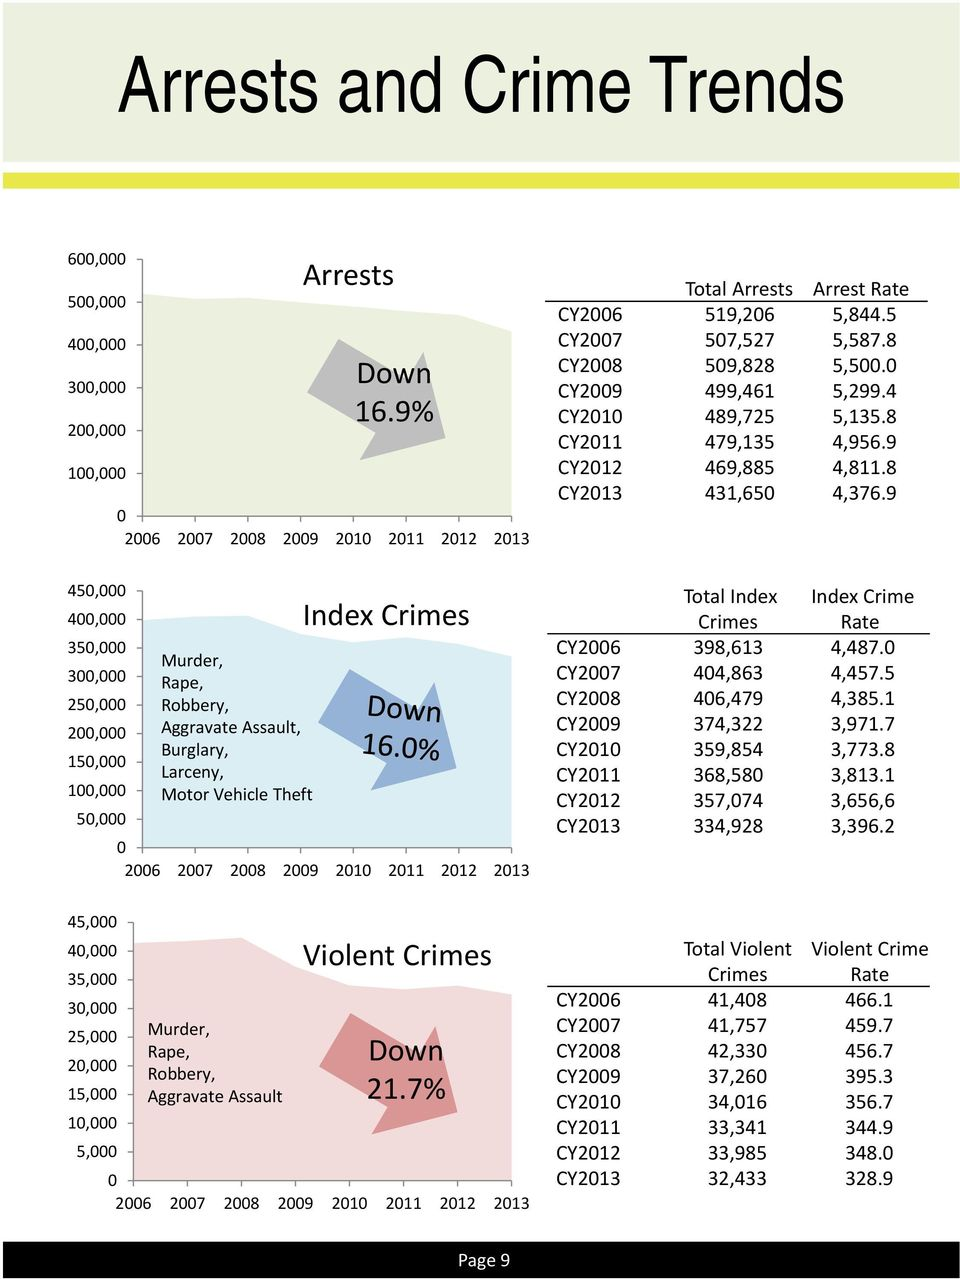 9 45, 4, 35, 3, 25, 2, 15, 1, 5, Murder, Rape, Robbery, Aggravate Assault, Burglary, Larceny, Motor Vehicle Theft Index Crimes 26 27 28 29 21 211 212 213 Total Index Index Crime Crimes Rate CY26